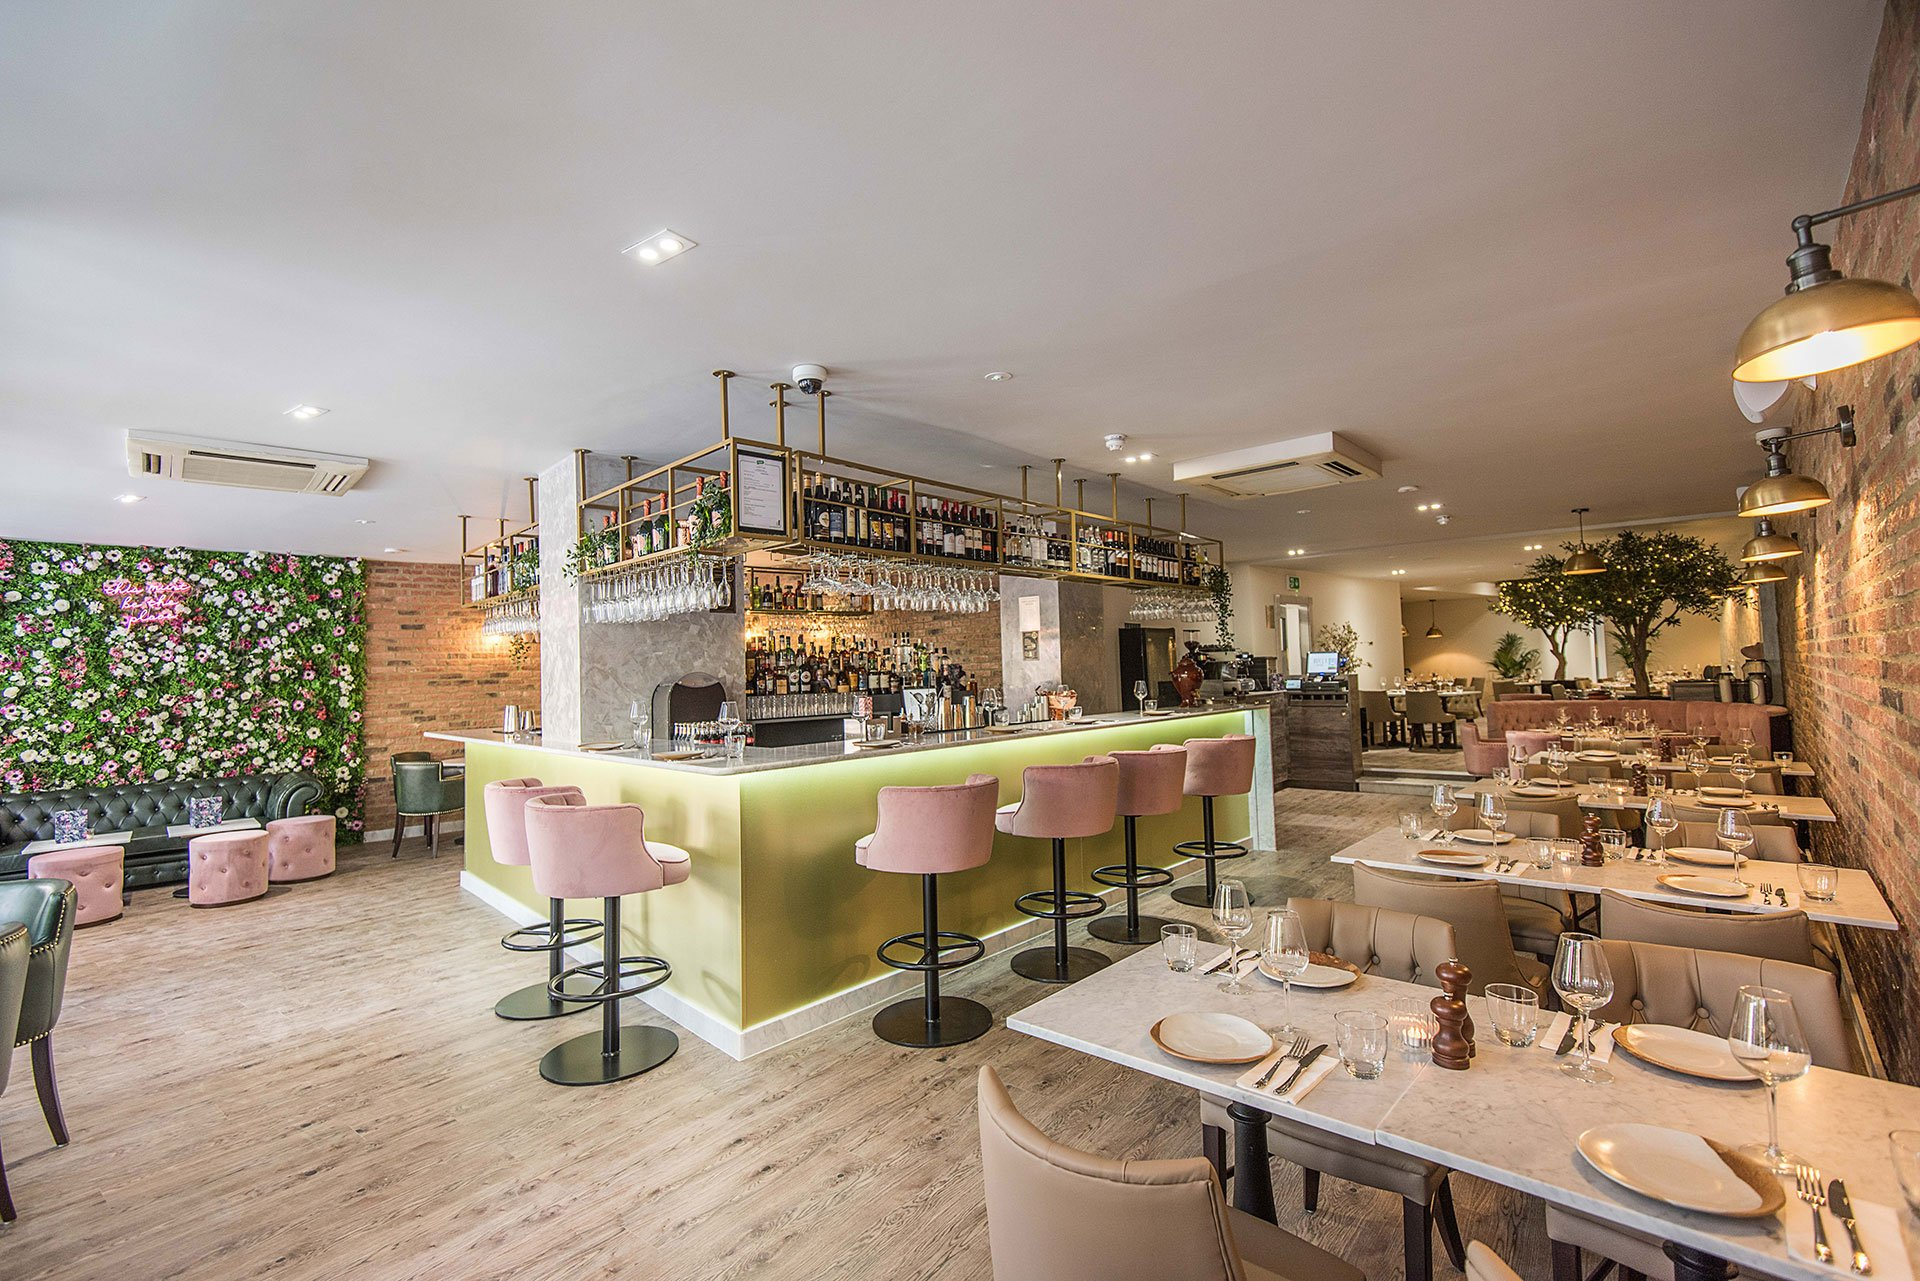 Interior of Booca Social restaurant with wooden dining tables and central lime green bar with pink bar stools